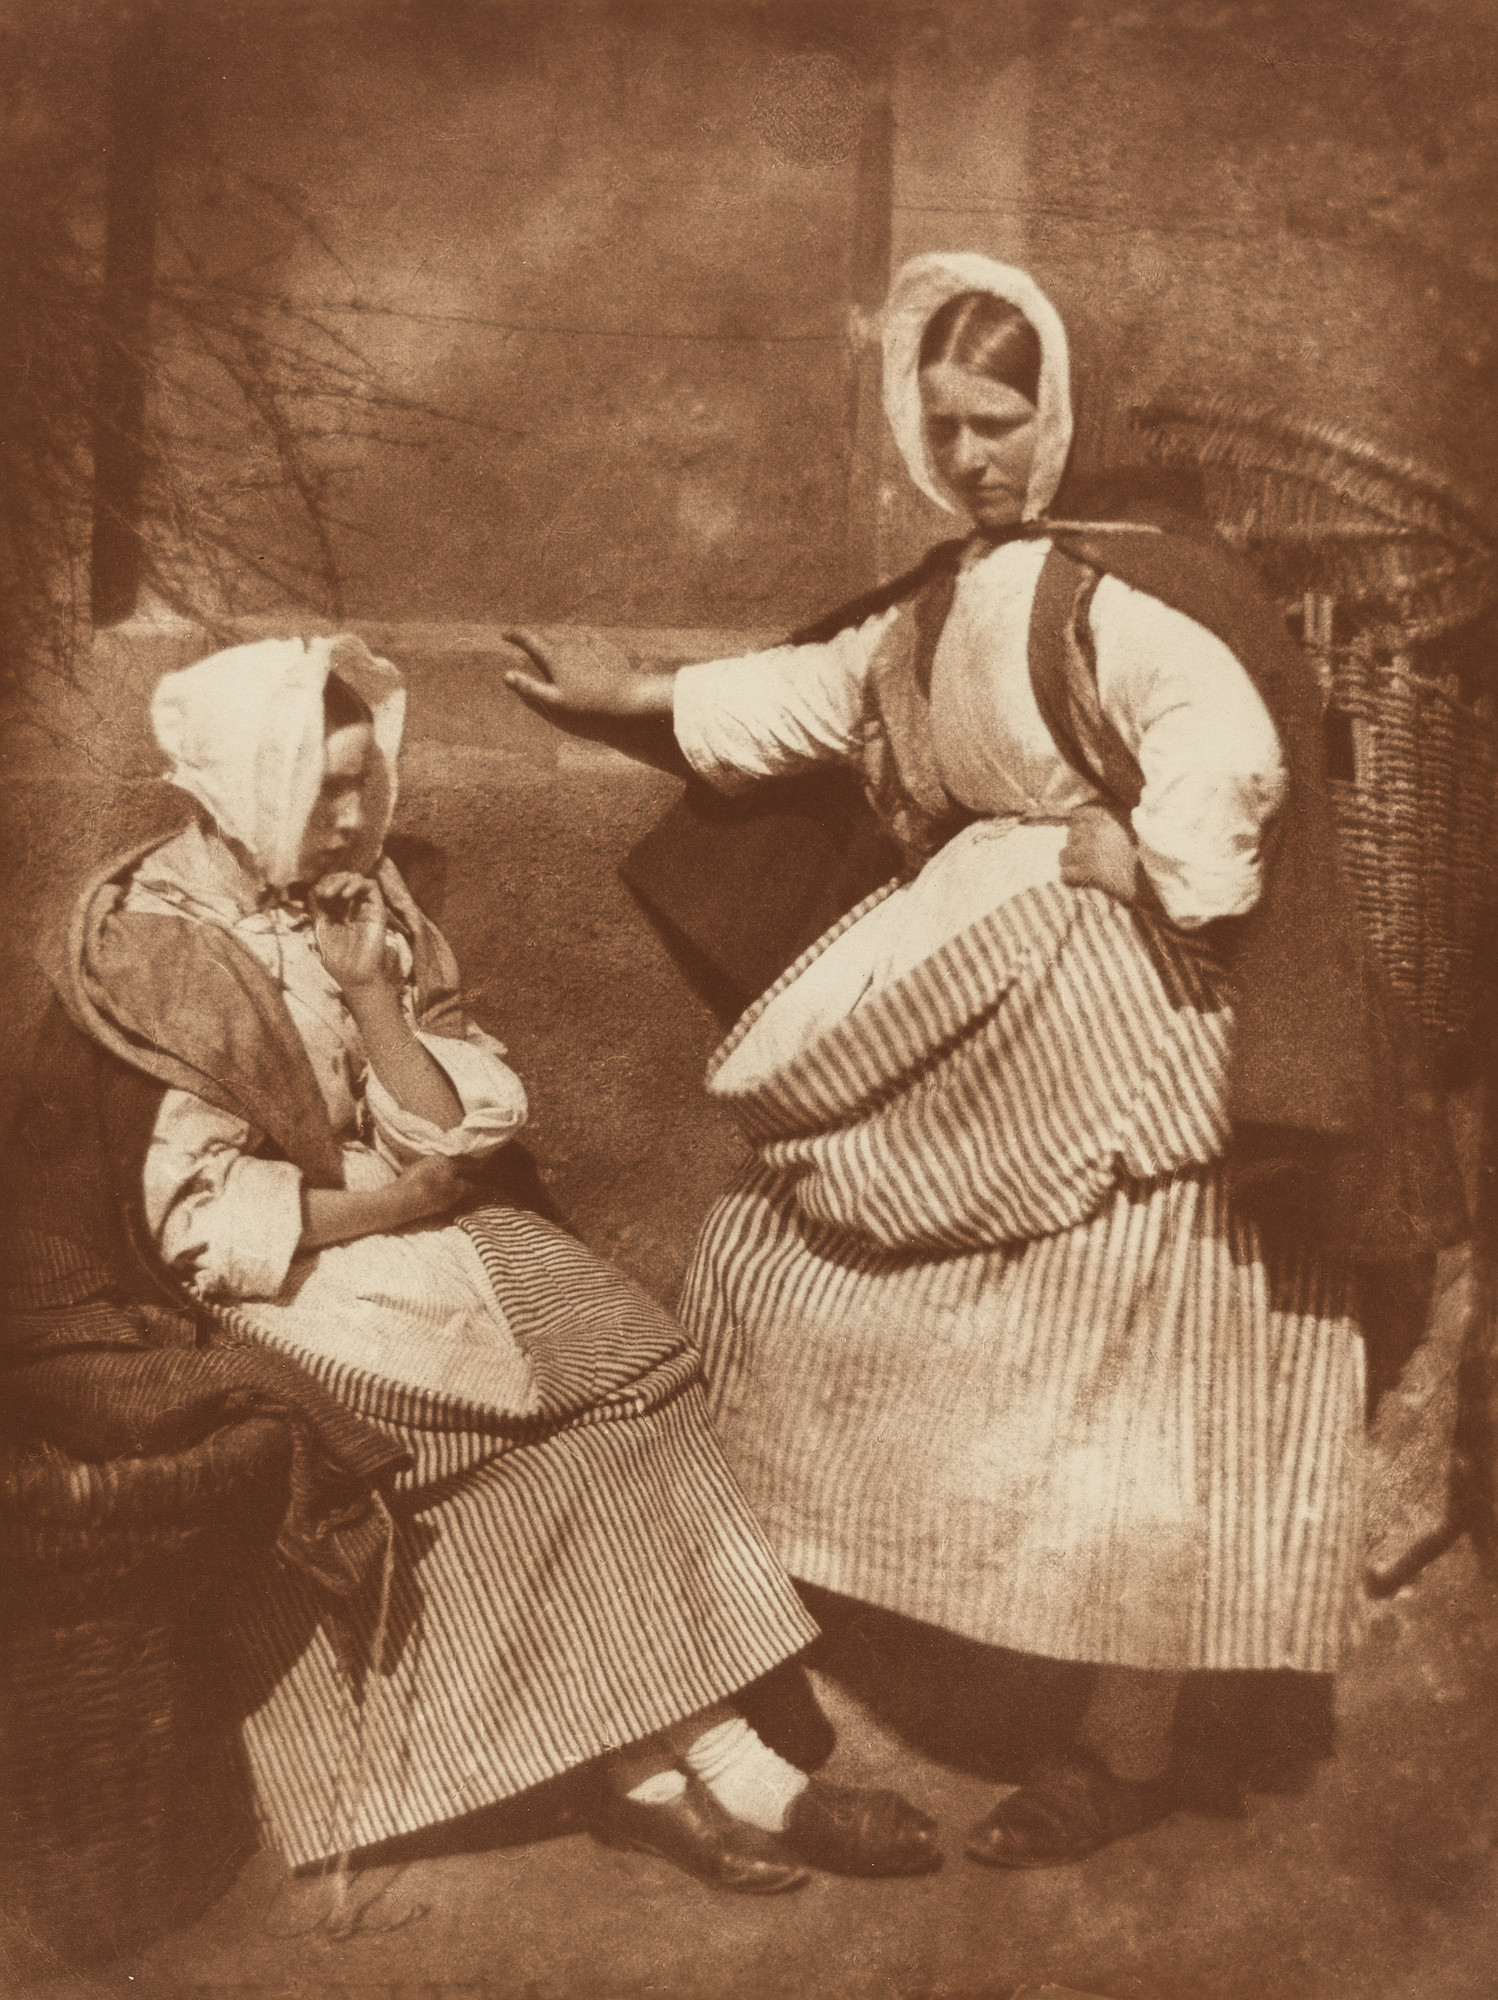 David Octavius Hill, Robert Adamson. Newhaven Fishwives. 1840